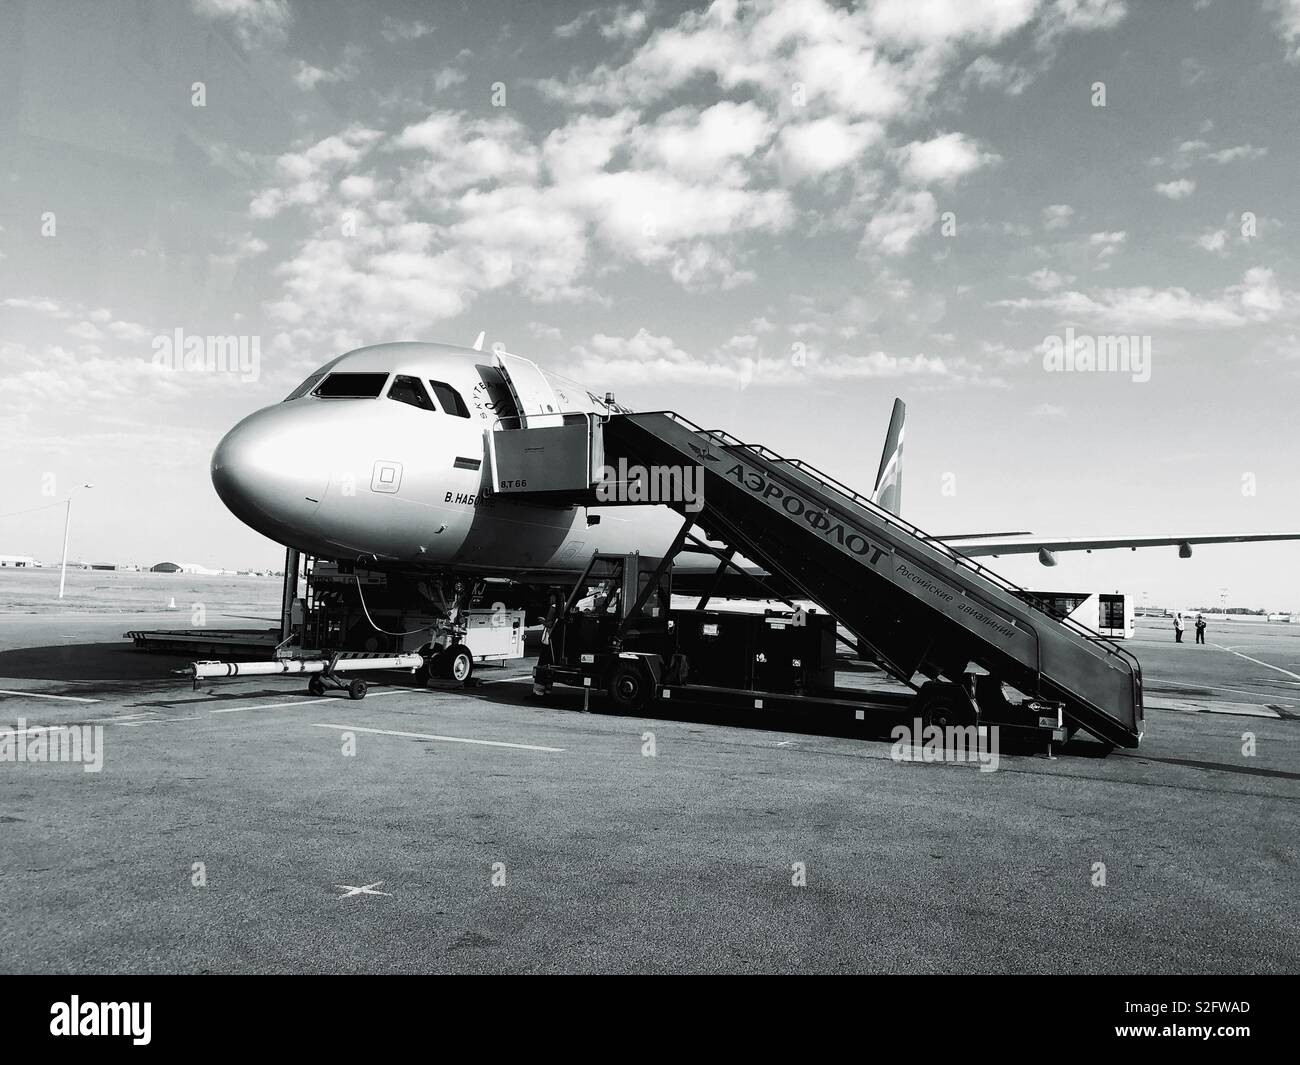 Airplane ready for passengers to embark on tamarack - Stock Image